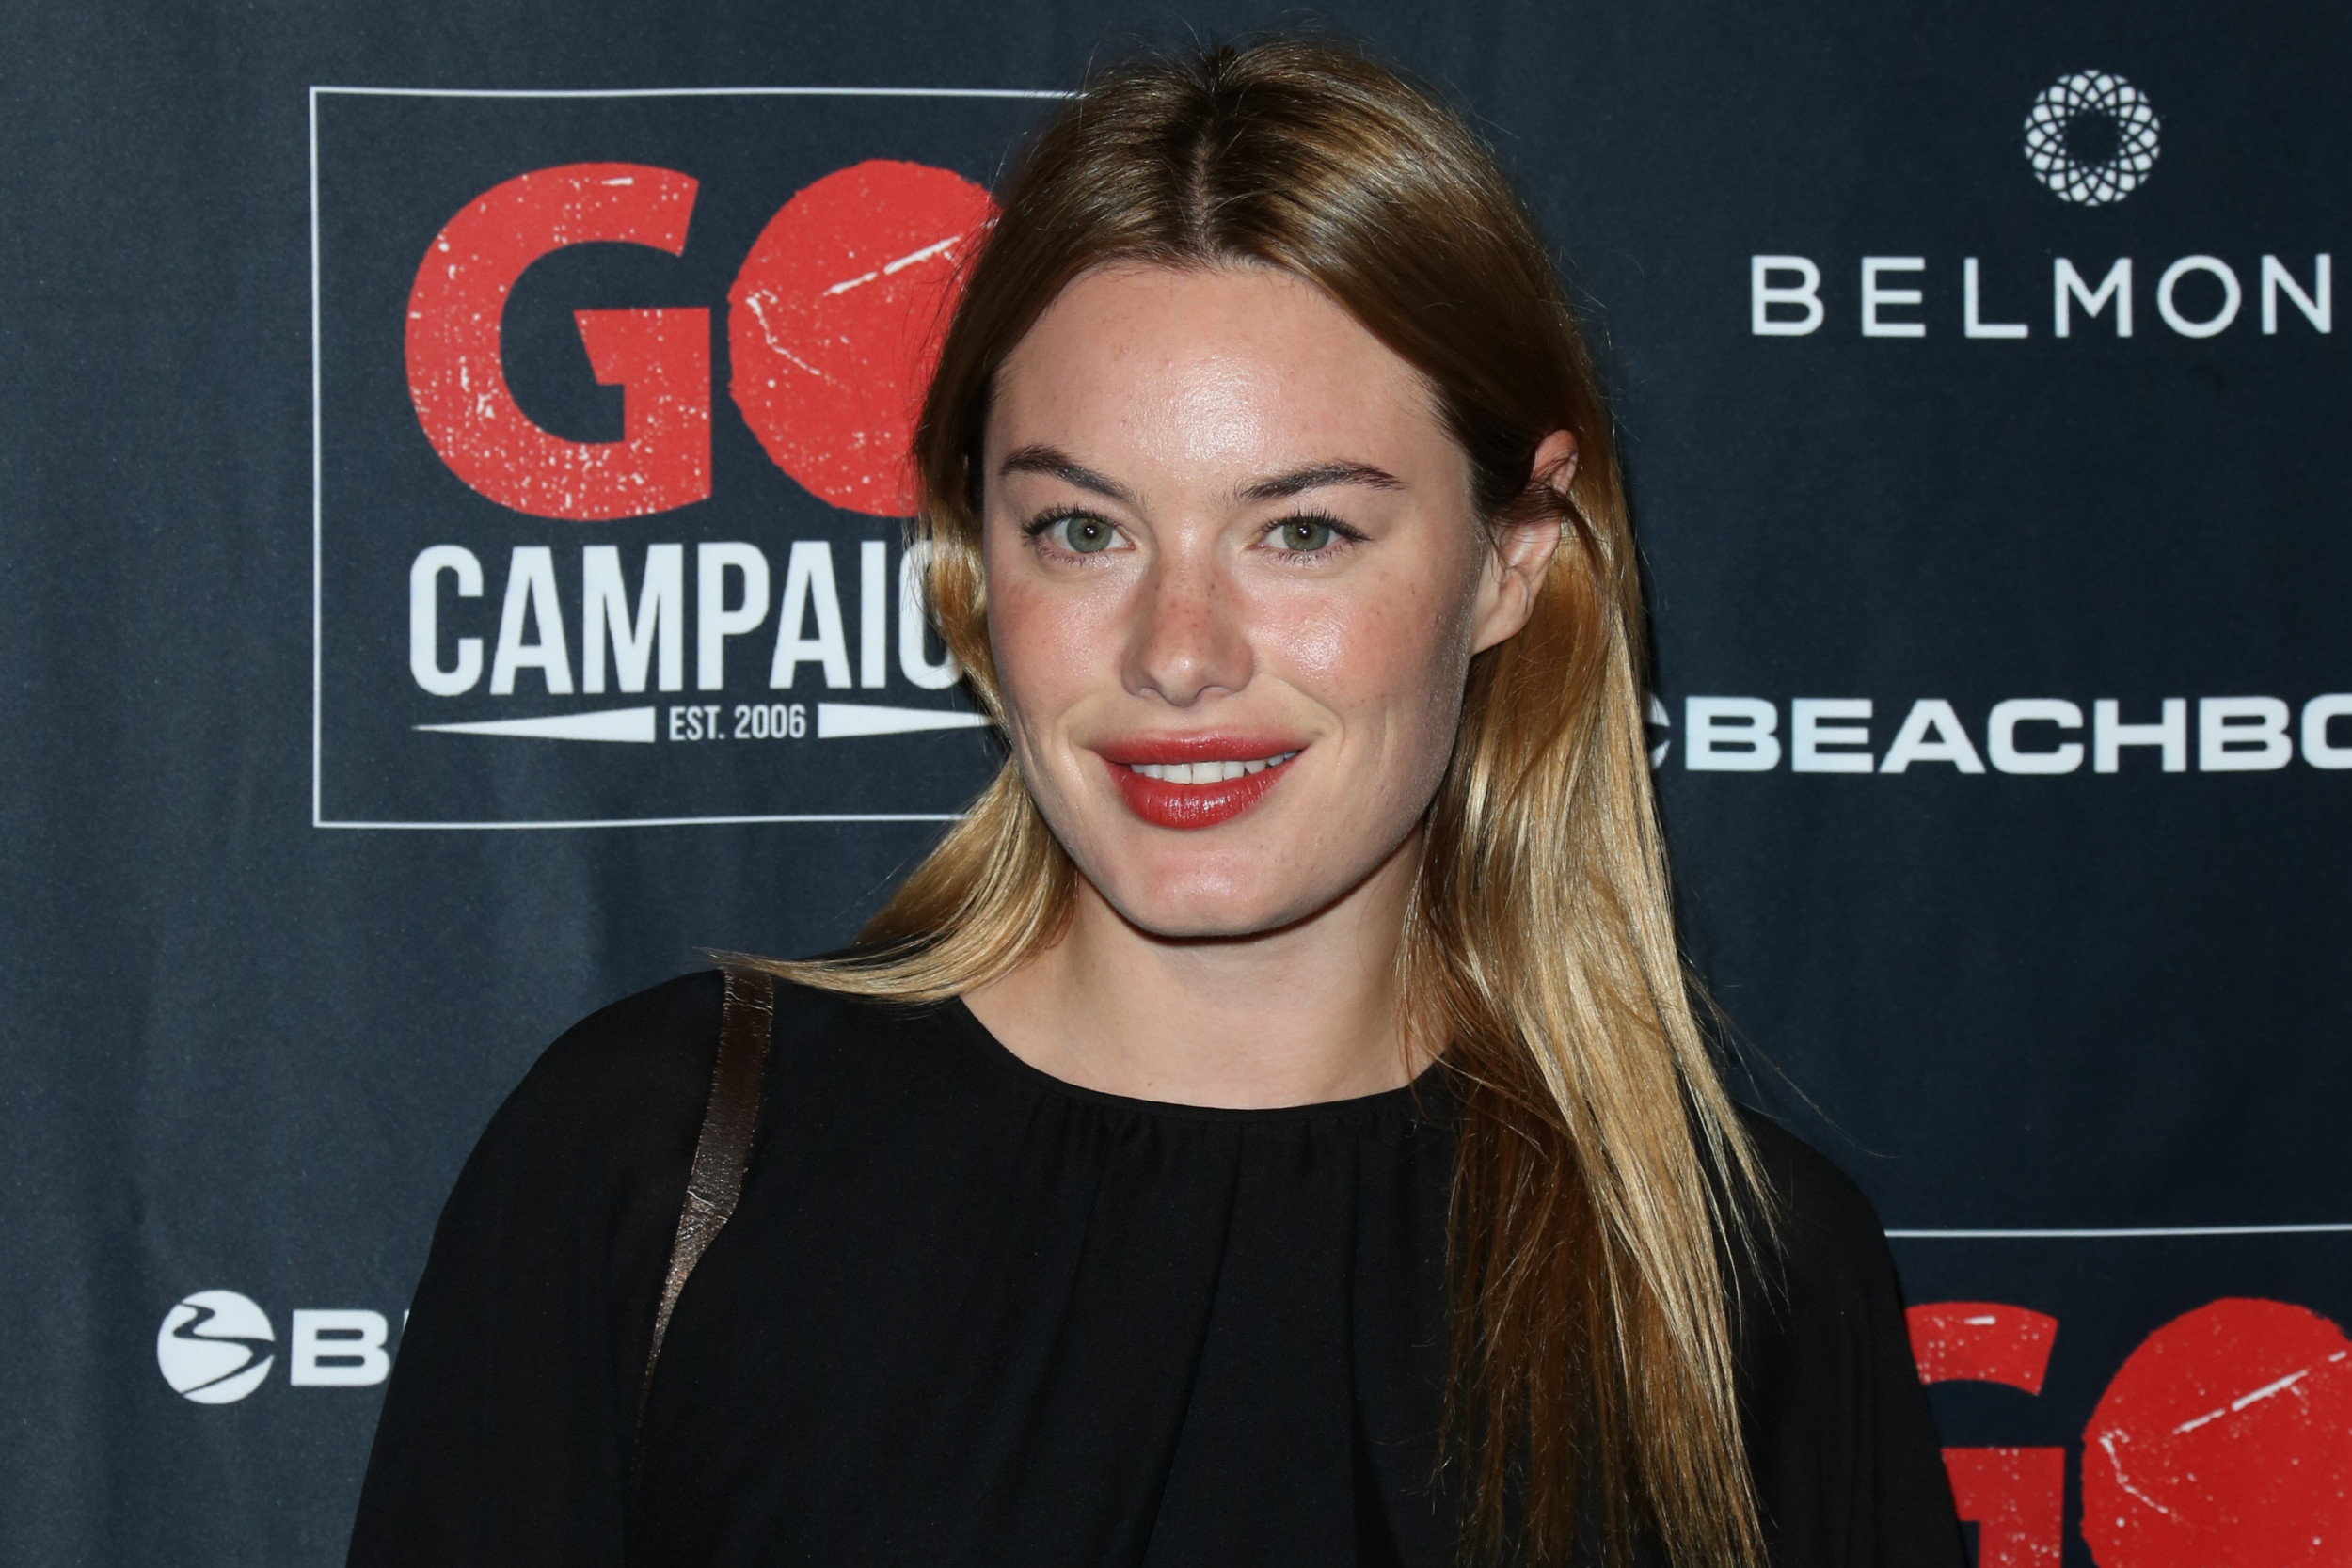 3 reasons why model camille rowe may be harry styles fine line inspiration 3 reasons why model camille rowe may be